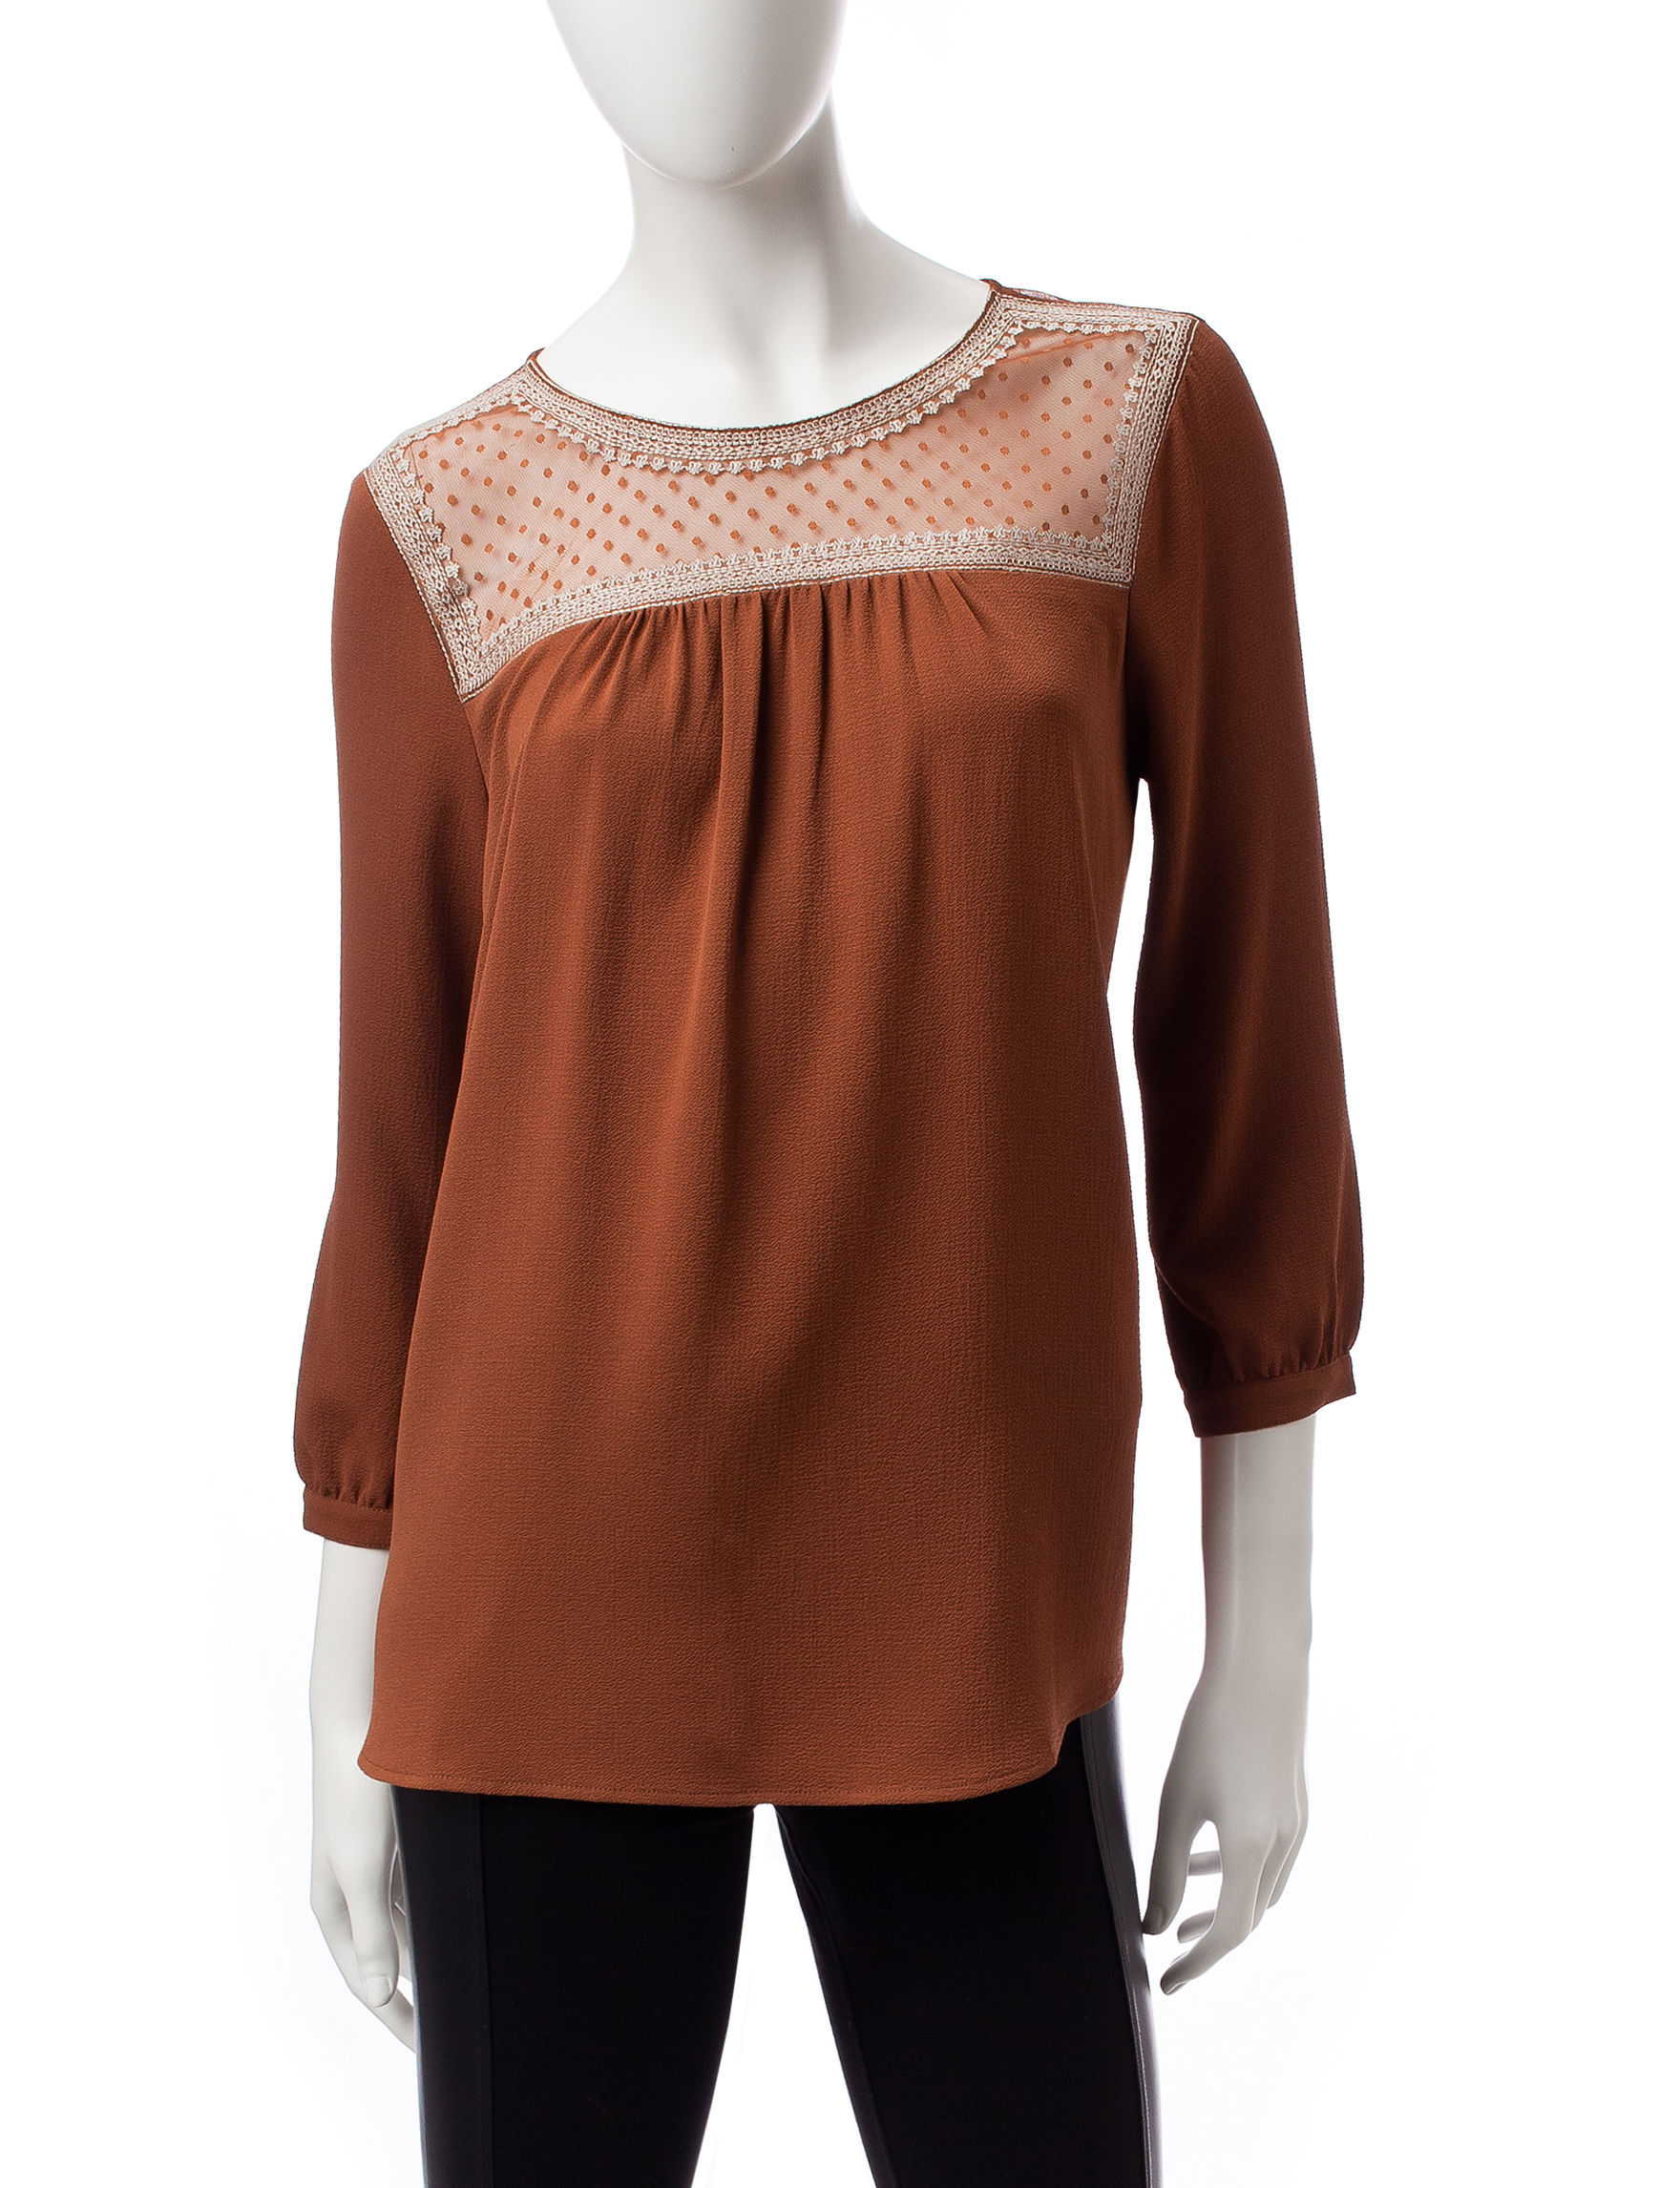 Signature Studio Rust / Copper Shirts & Blouses